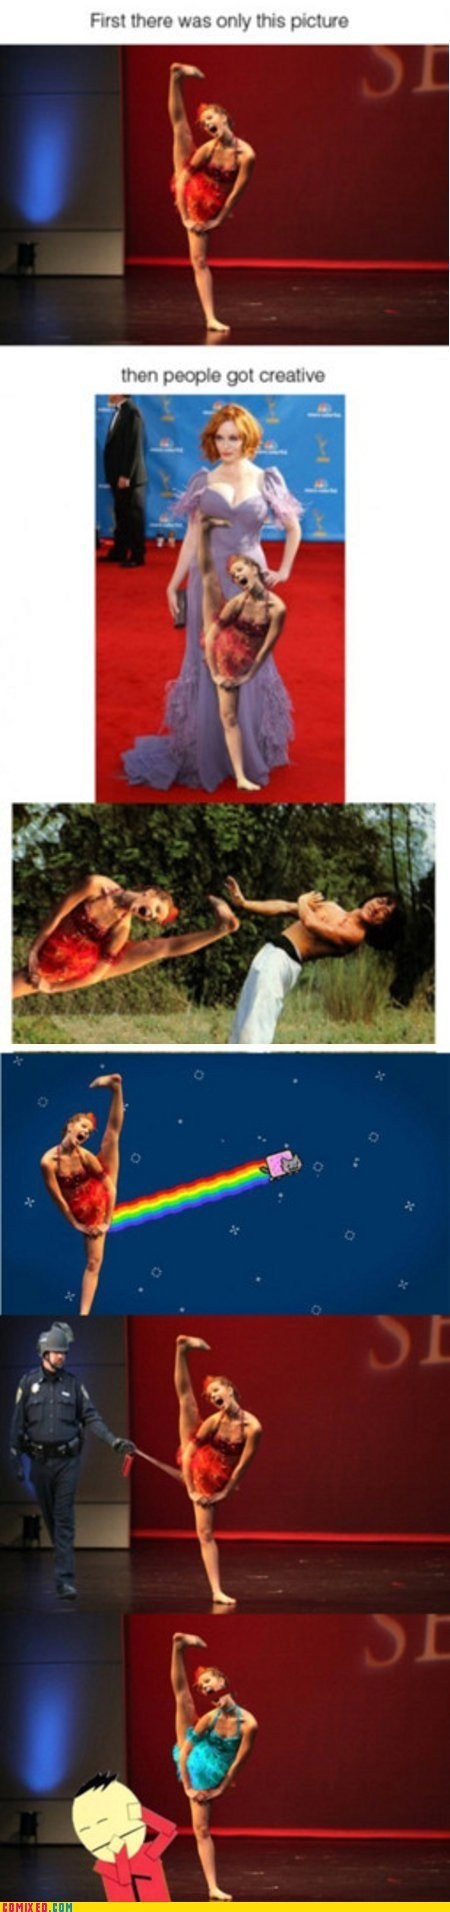 dance,kicking,photoshopped,the internets